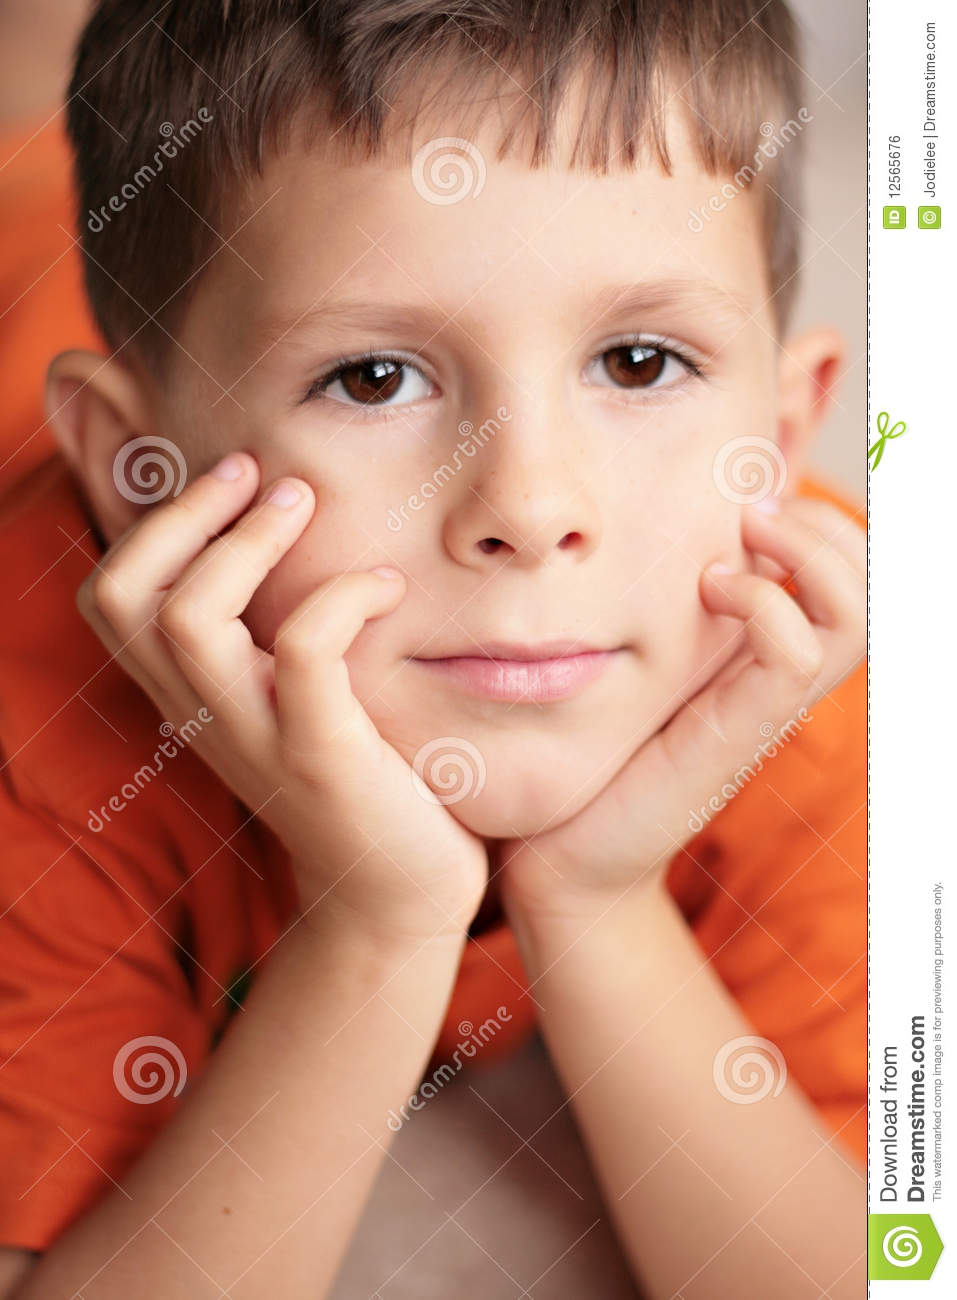 Young Boy Relaxed Smiling With Hands On Chin Royalty Free ...